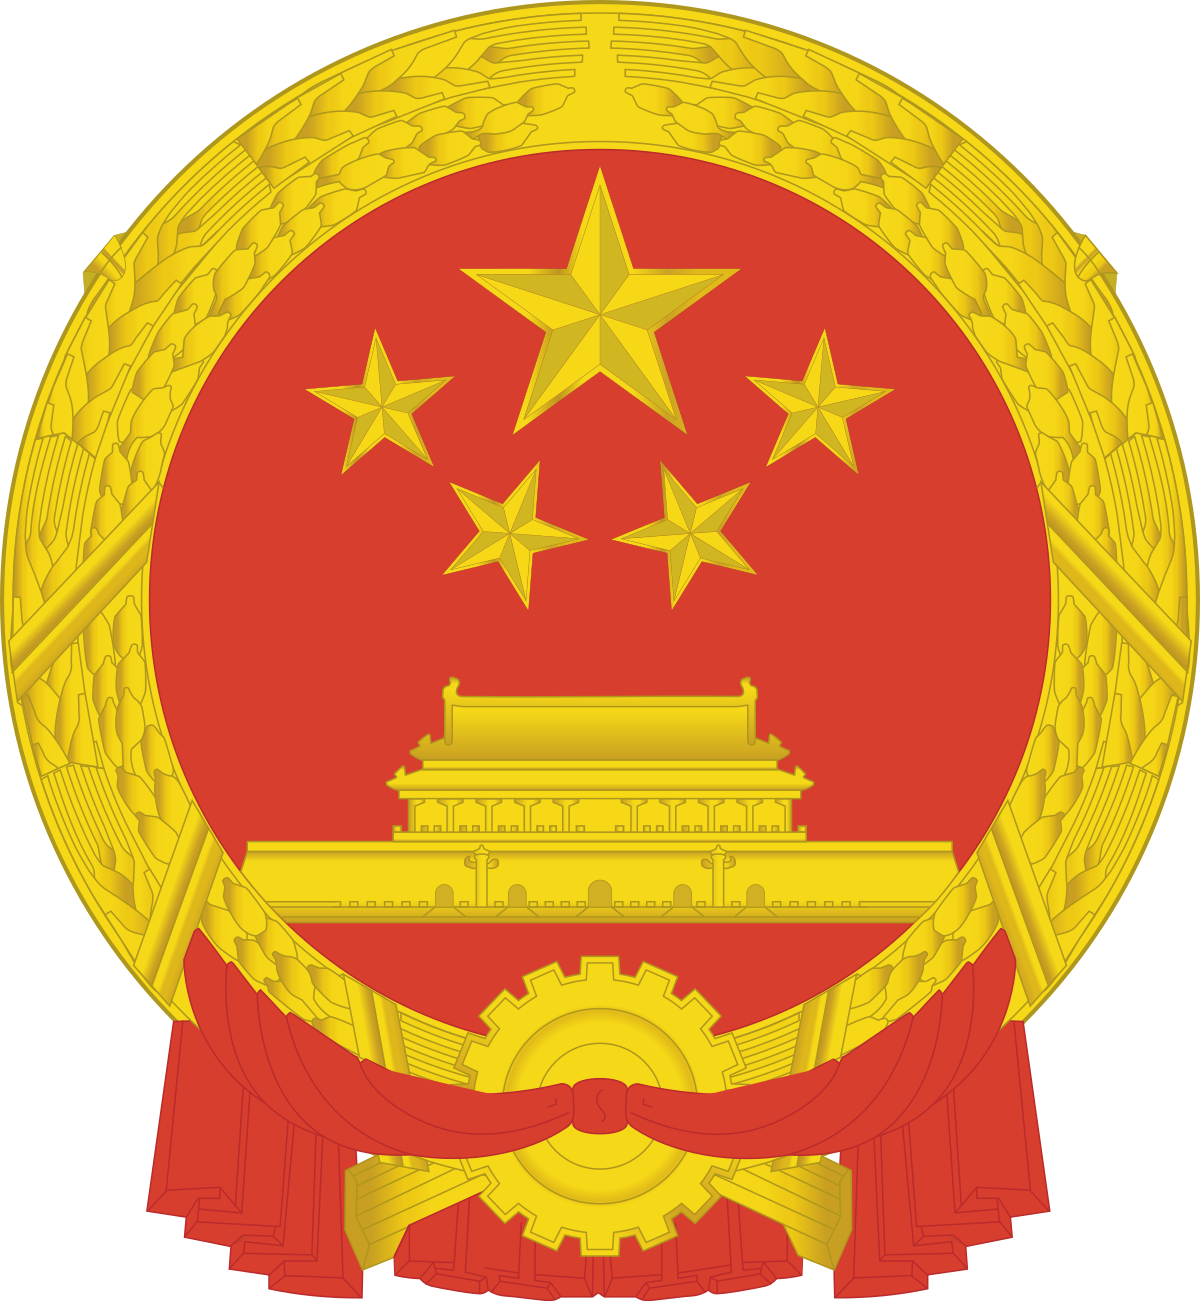 Warsaw pact clipart banner freeuse download Socialist heraldry - Wikipedia banner freeuse download